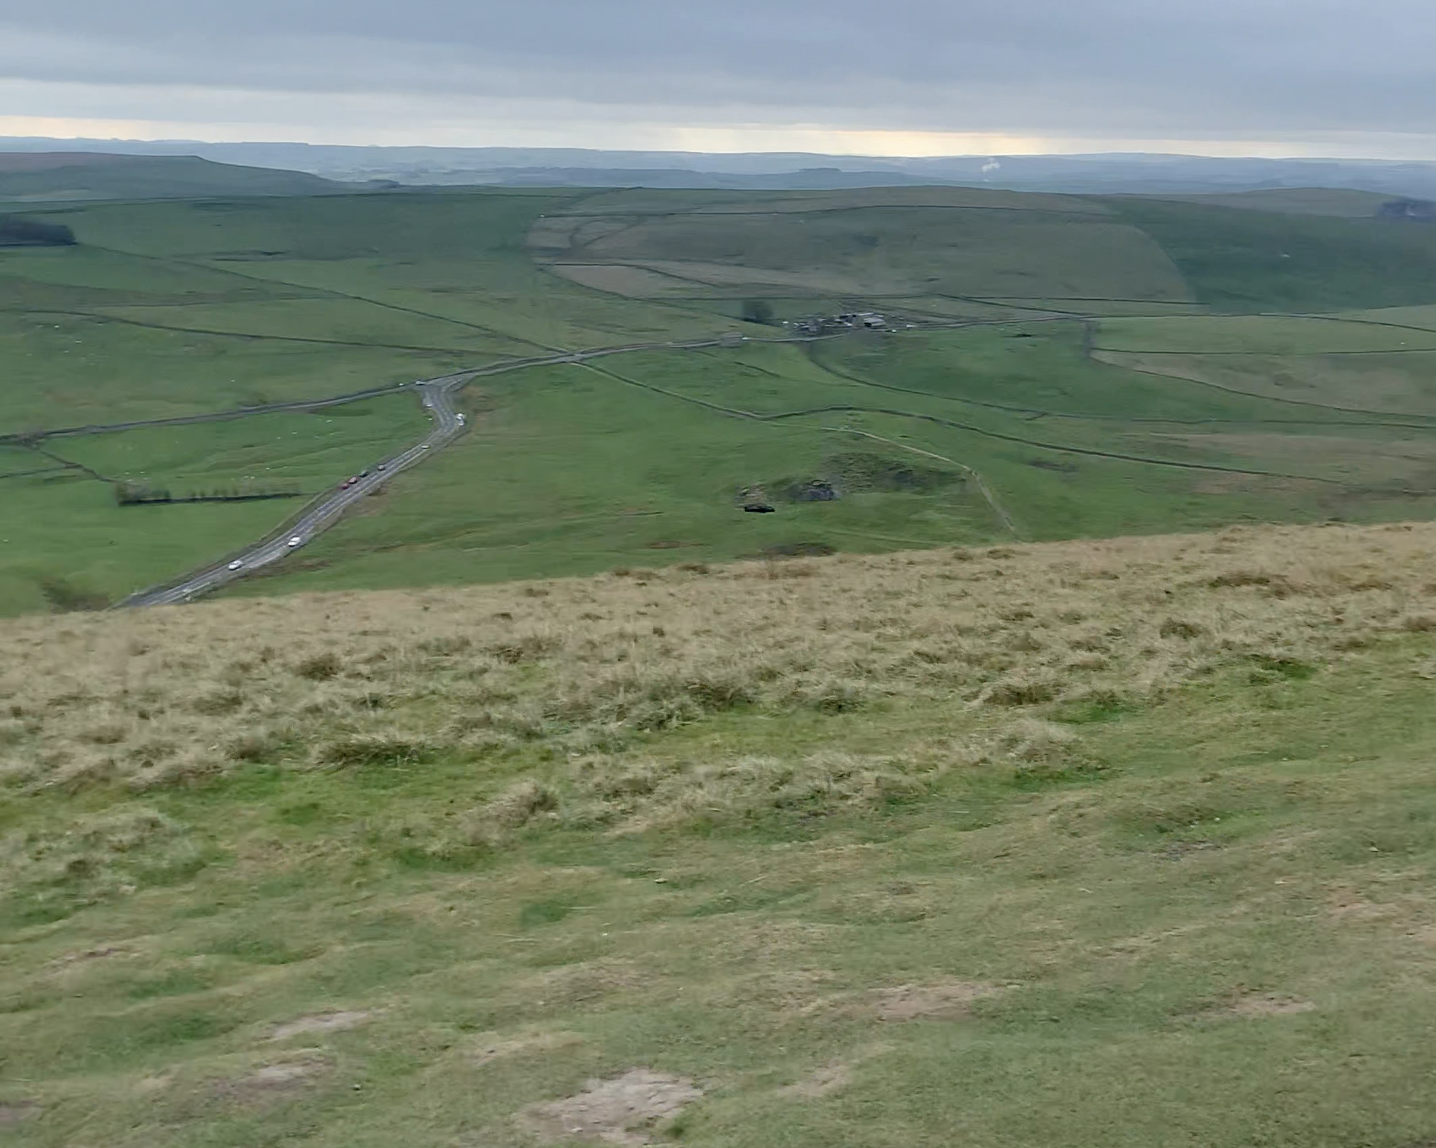 The from the top of Mam Tor showing hills and roads in the distance